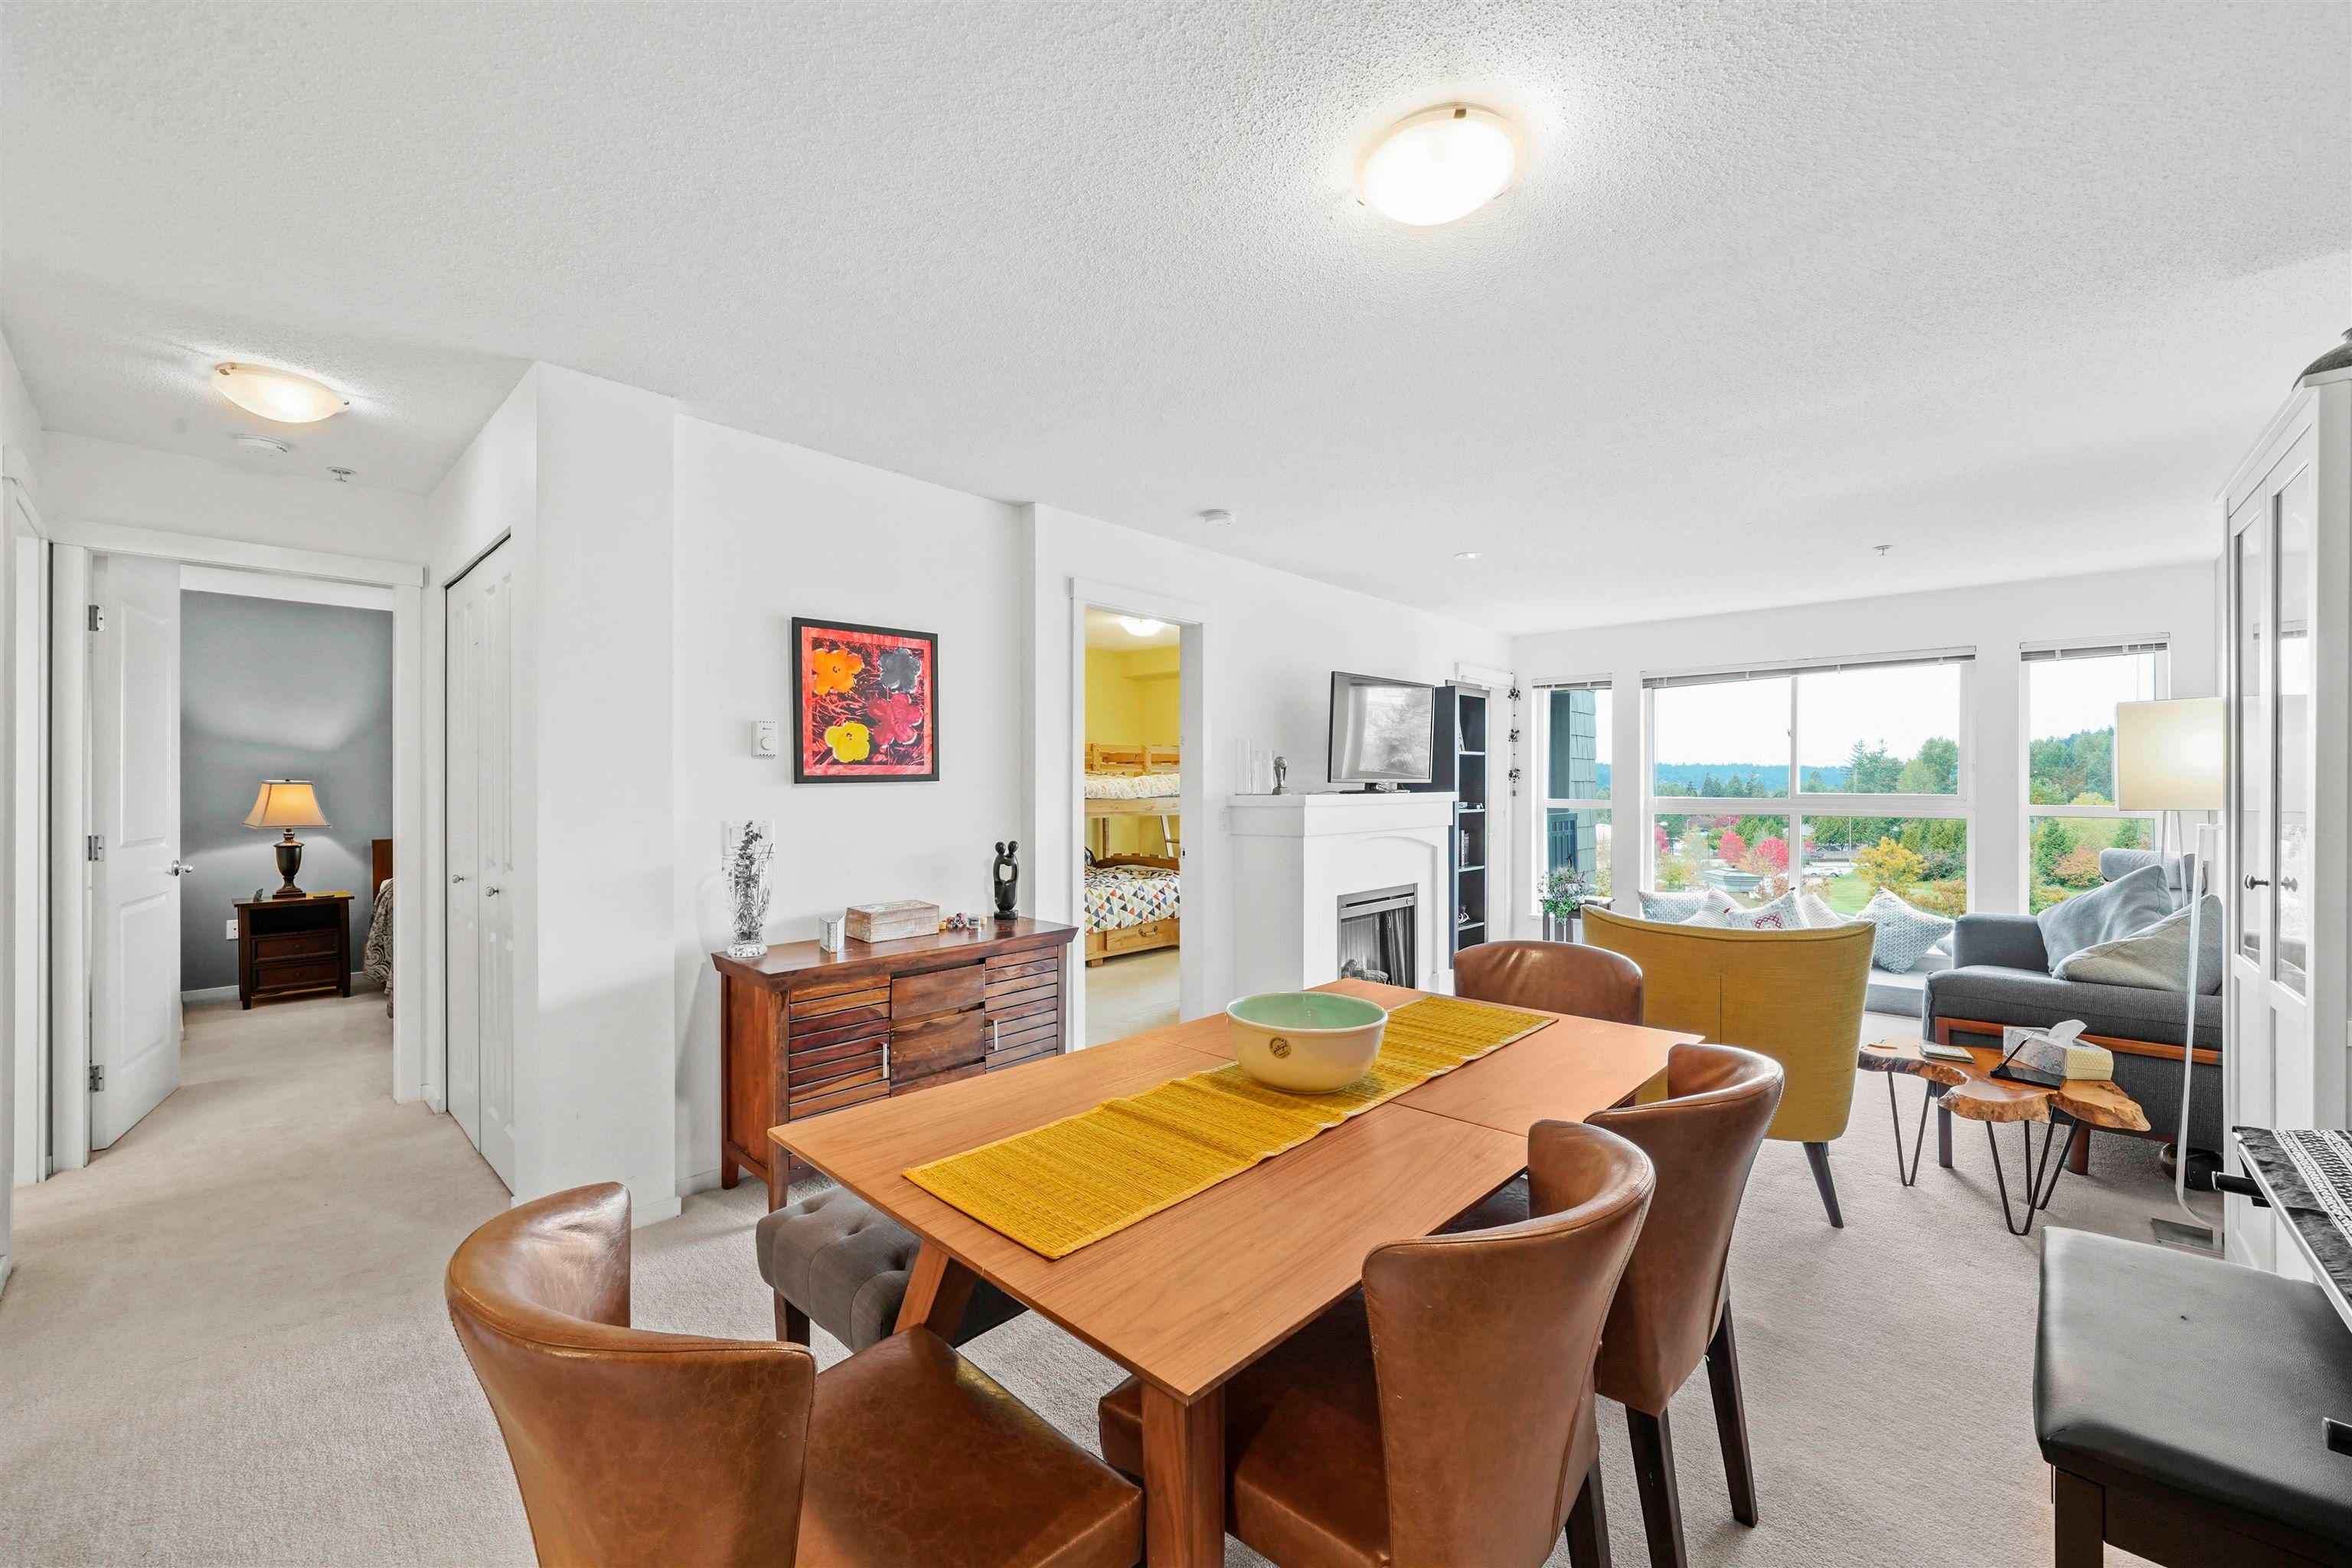 """Main Photo: 205 3082 DAYANEE SPRINGS Boulevard in Coquitlam: Westwood Plateau Condo for sale in """"THE LANTERNS DAYANEE SPRINGS"""" : MLS®# R2625528"""